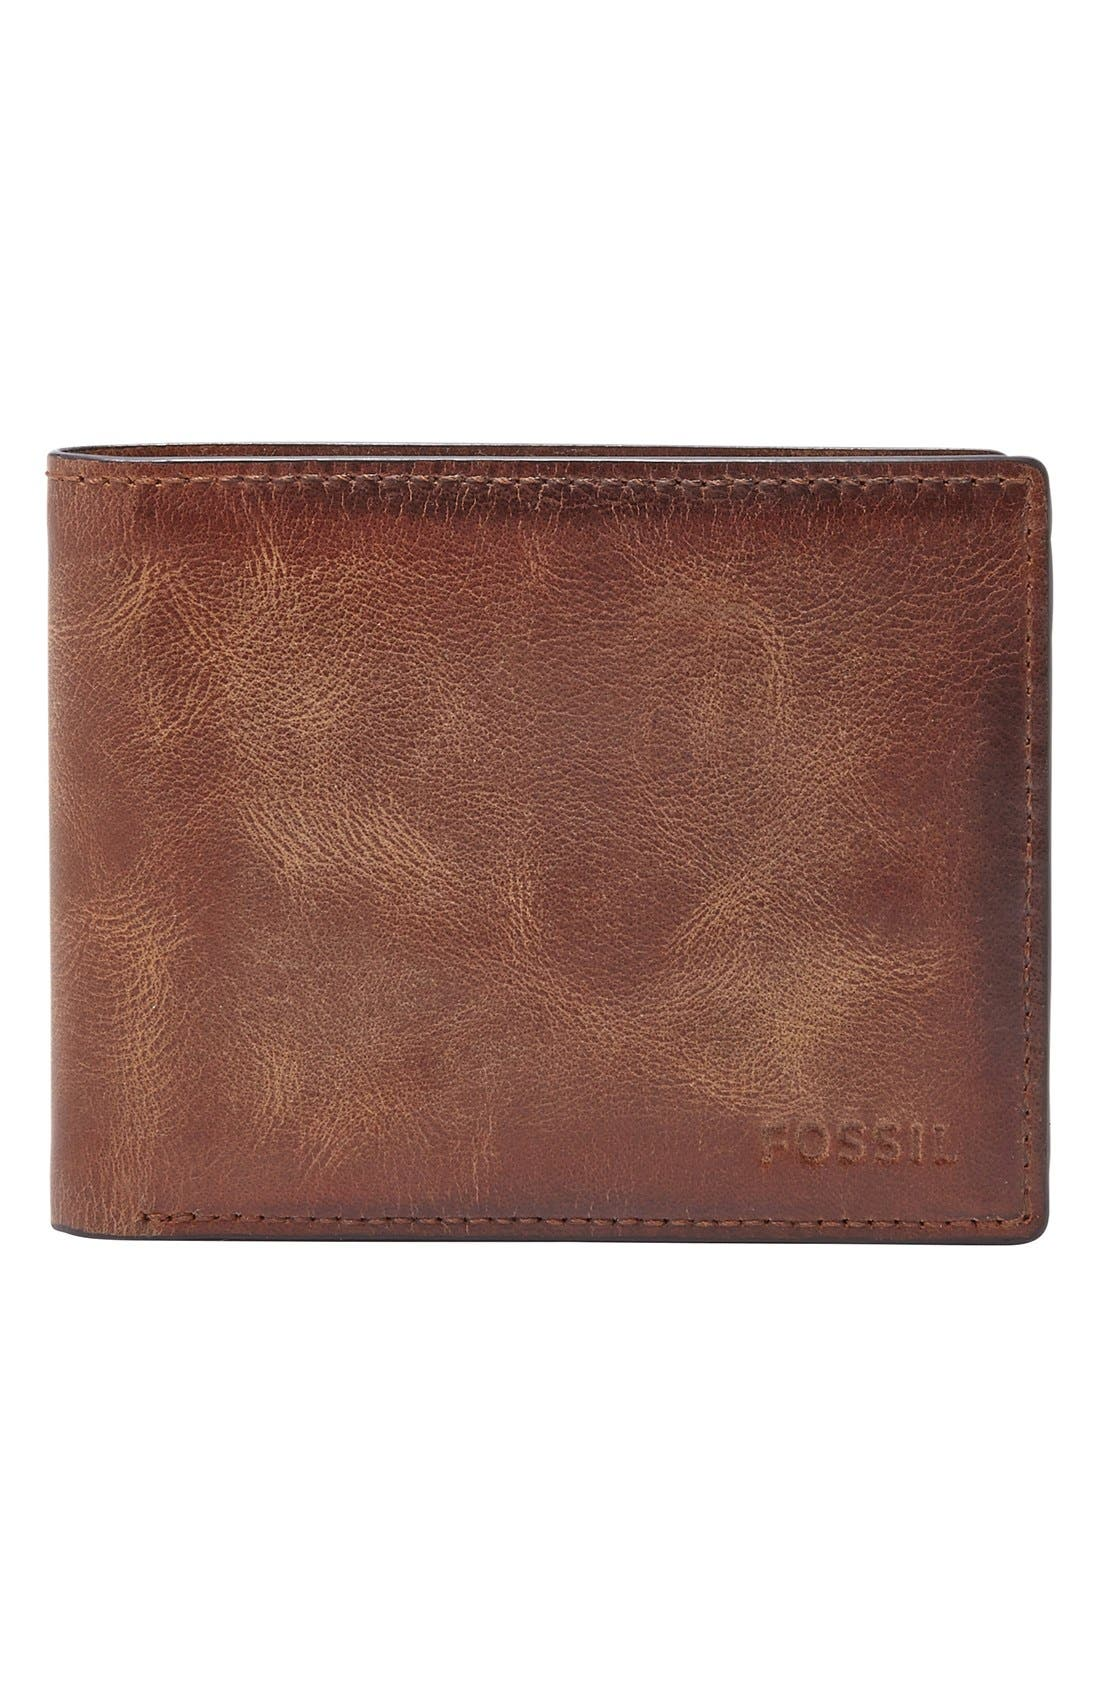 FOSSIL Derrick RFID Leather Bifold Wallet